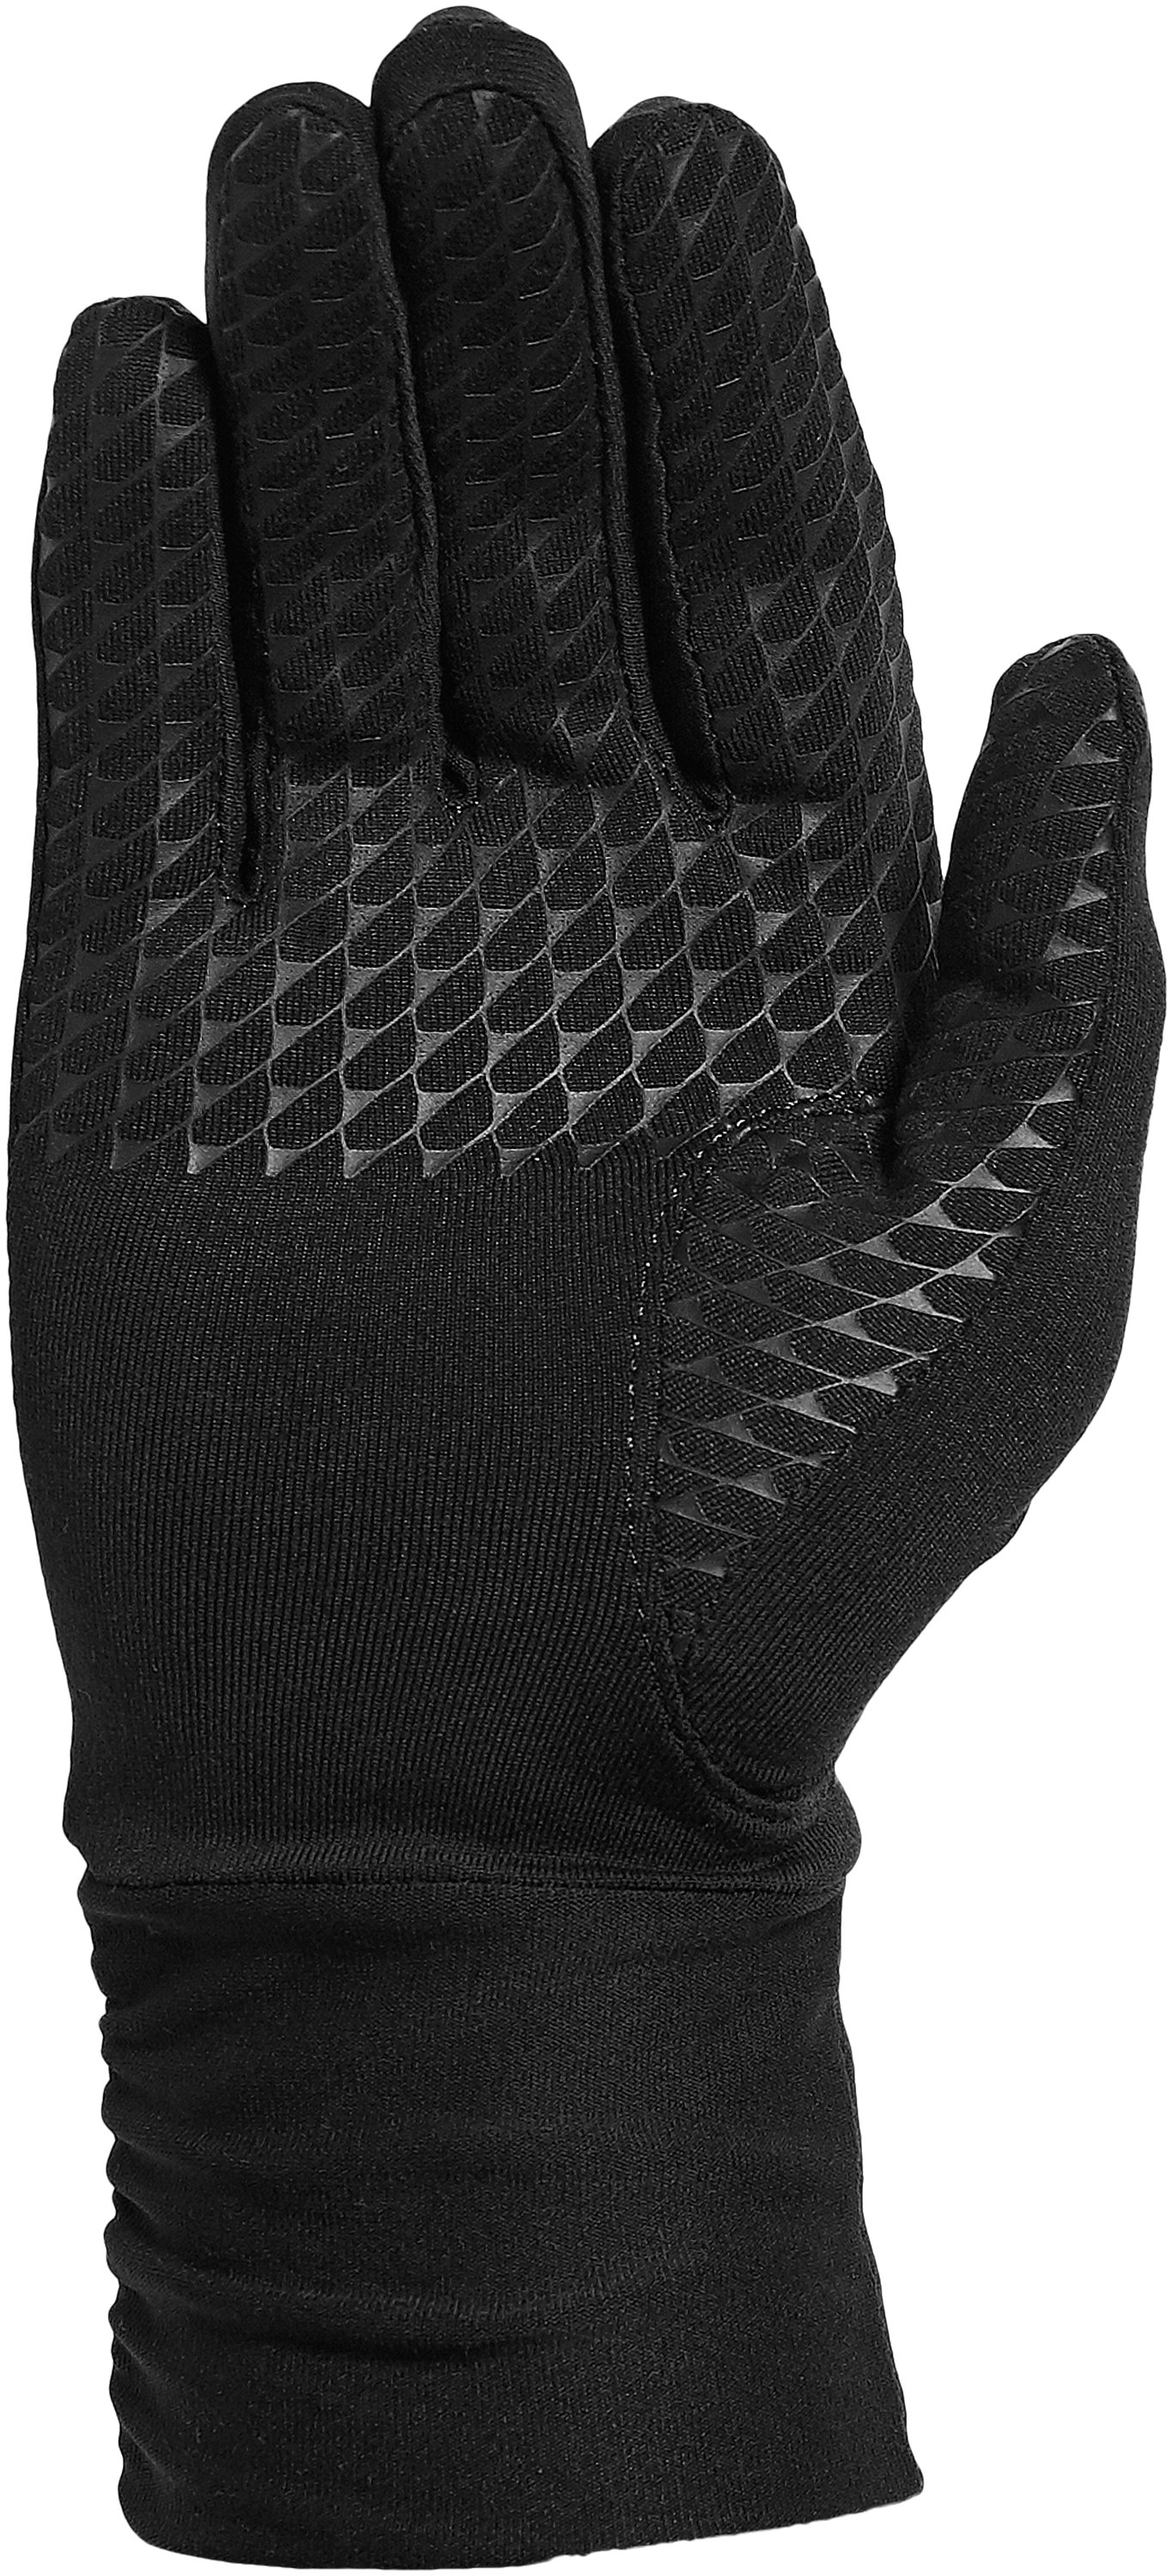 Women's UA Layered Up! Liner Glove, Black ,